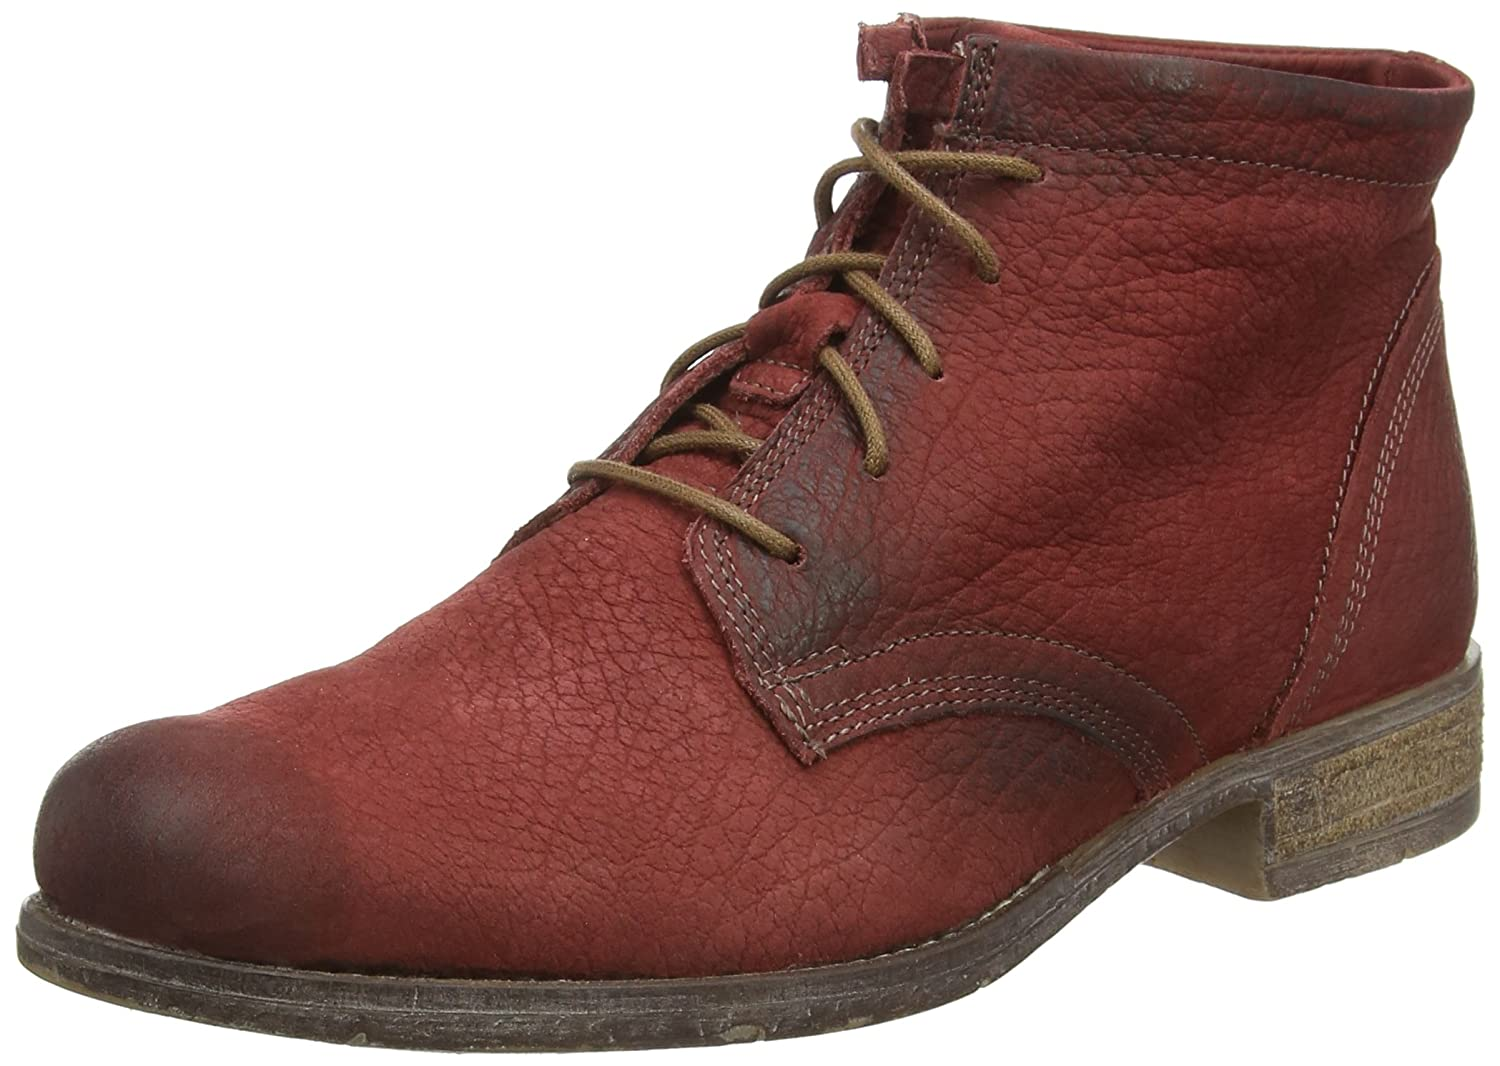 Josef Seibel Womens Sienna 03 Leather Boots B00VILEZGK 37 M EU|Red